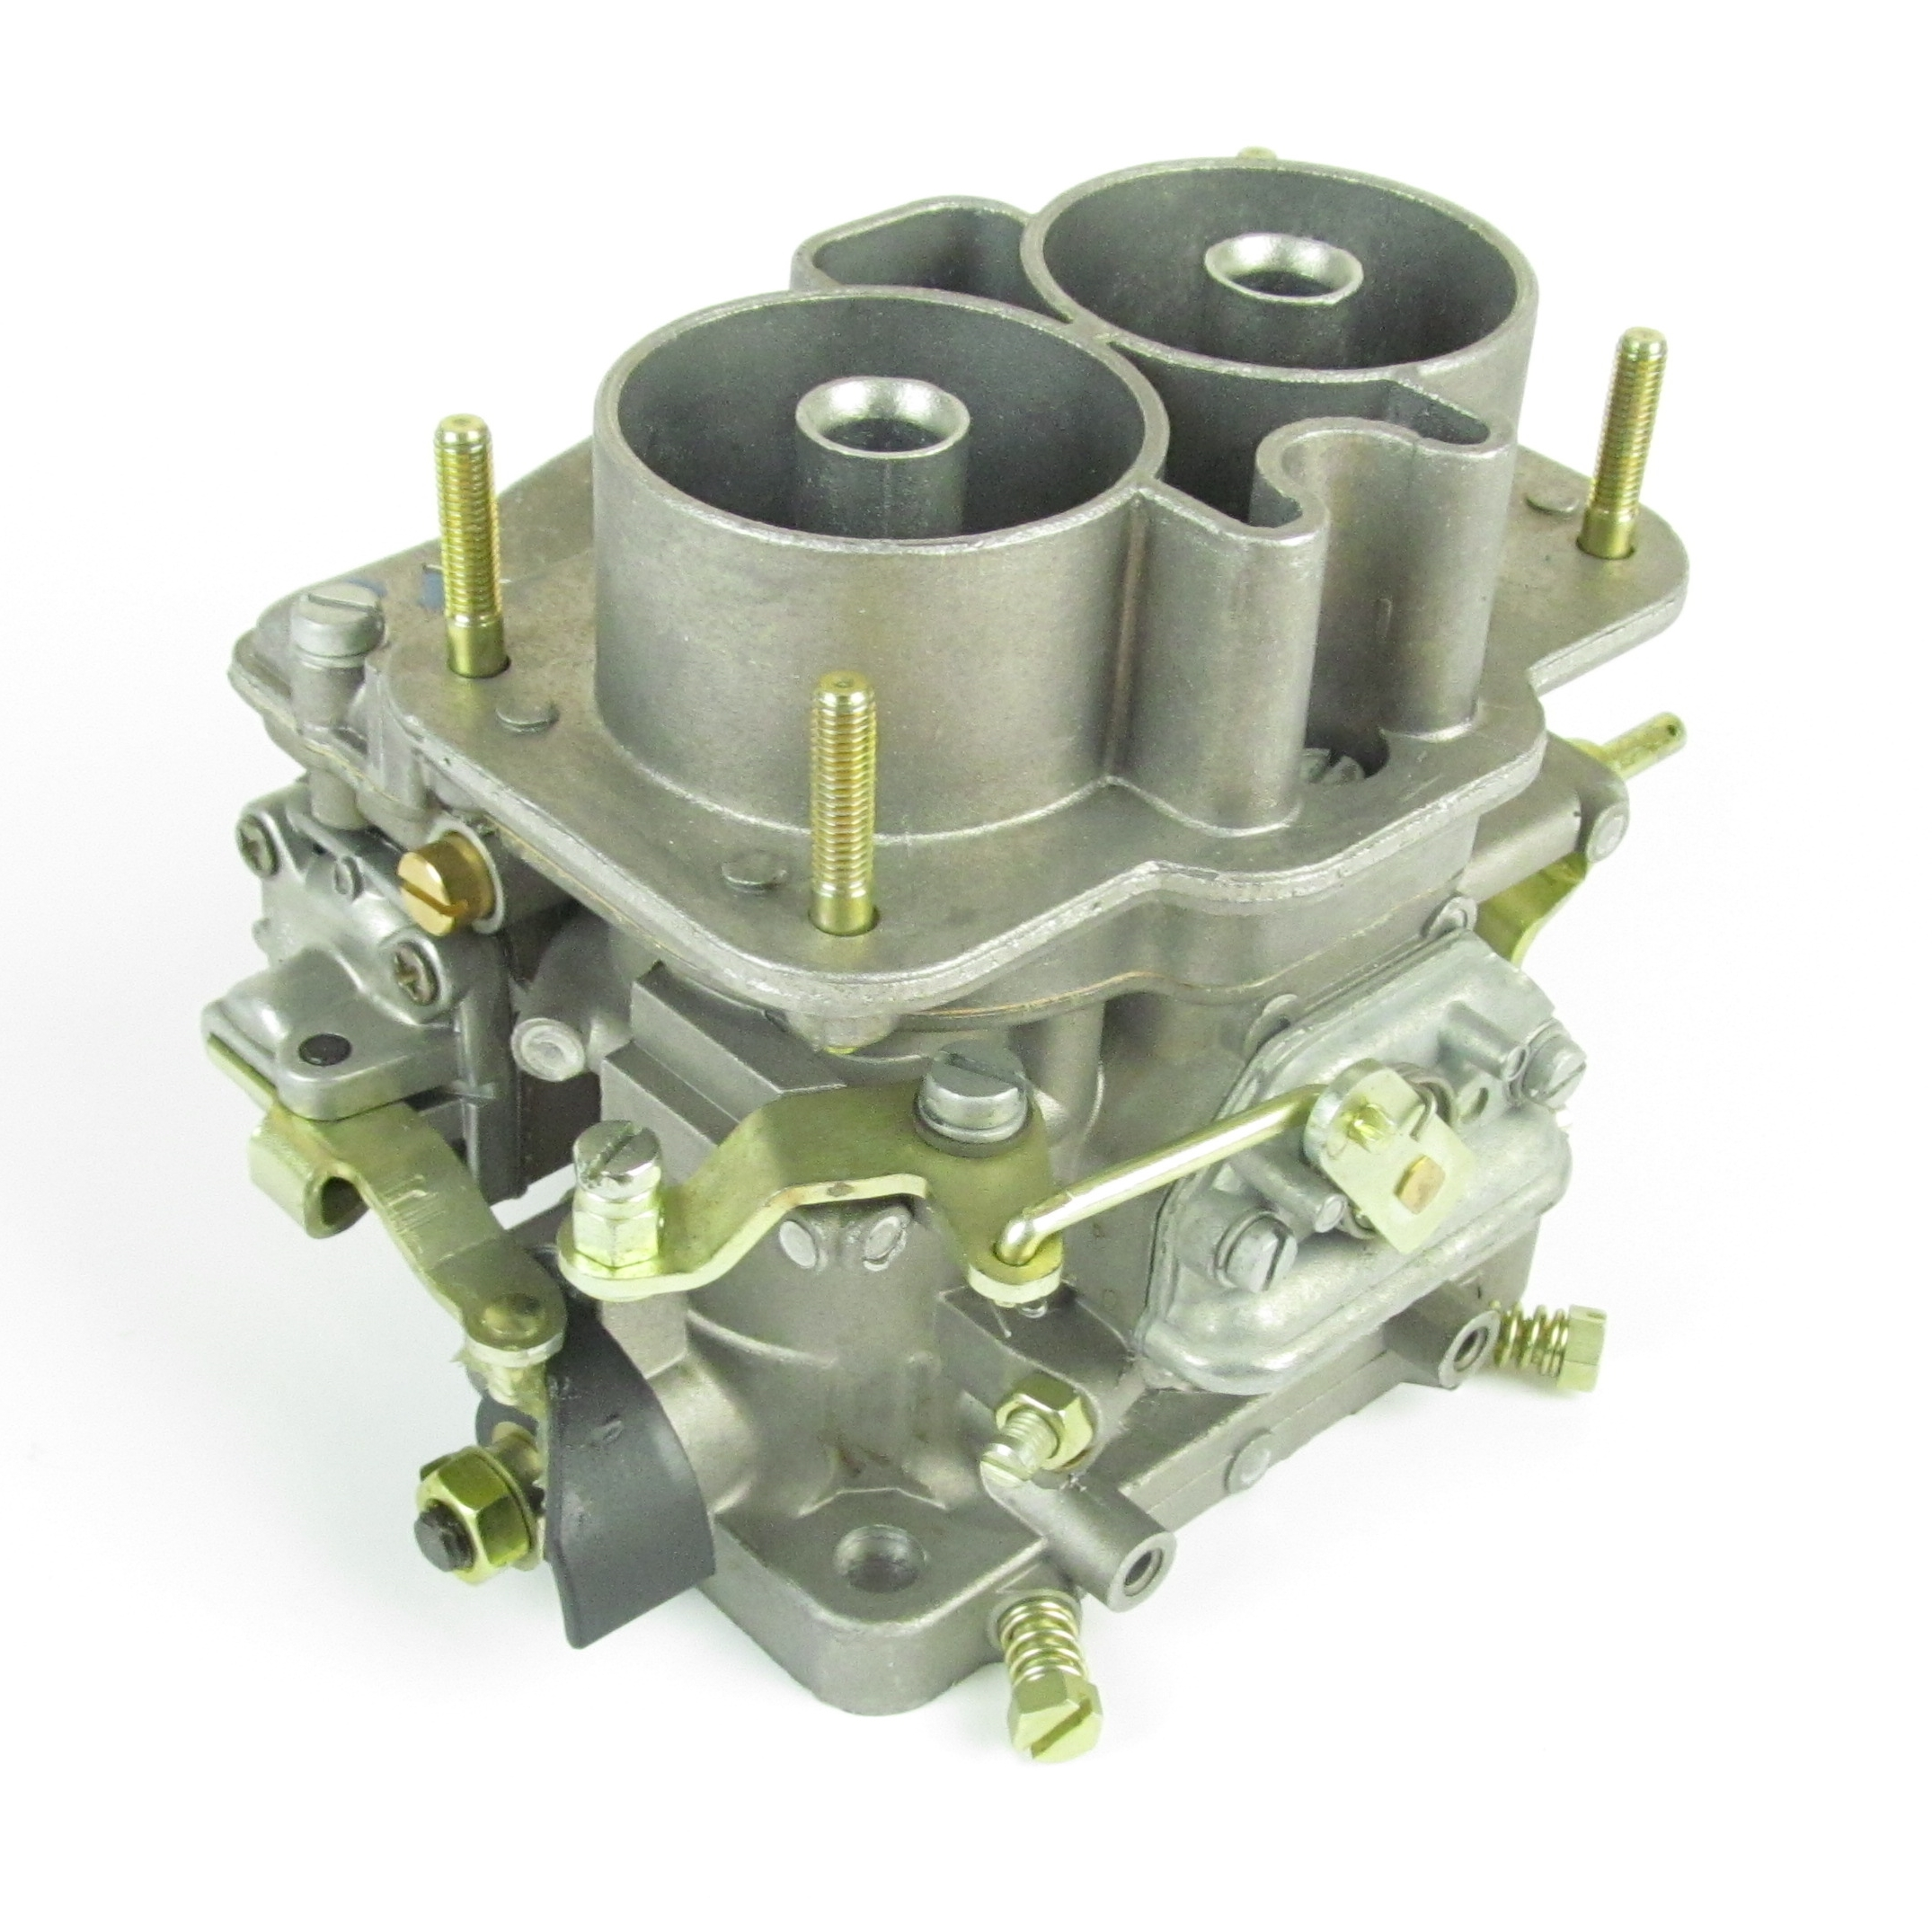 GENUINE WEBER 40 DCNF CARBURETTOR - FERRARI / FIAT / FORD / V6 / V8-ENGINES